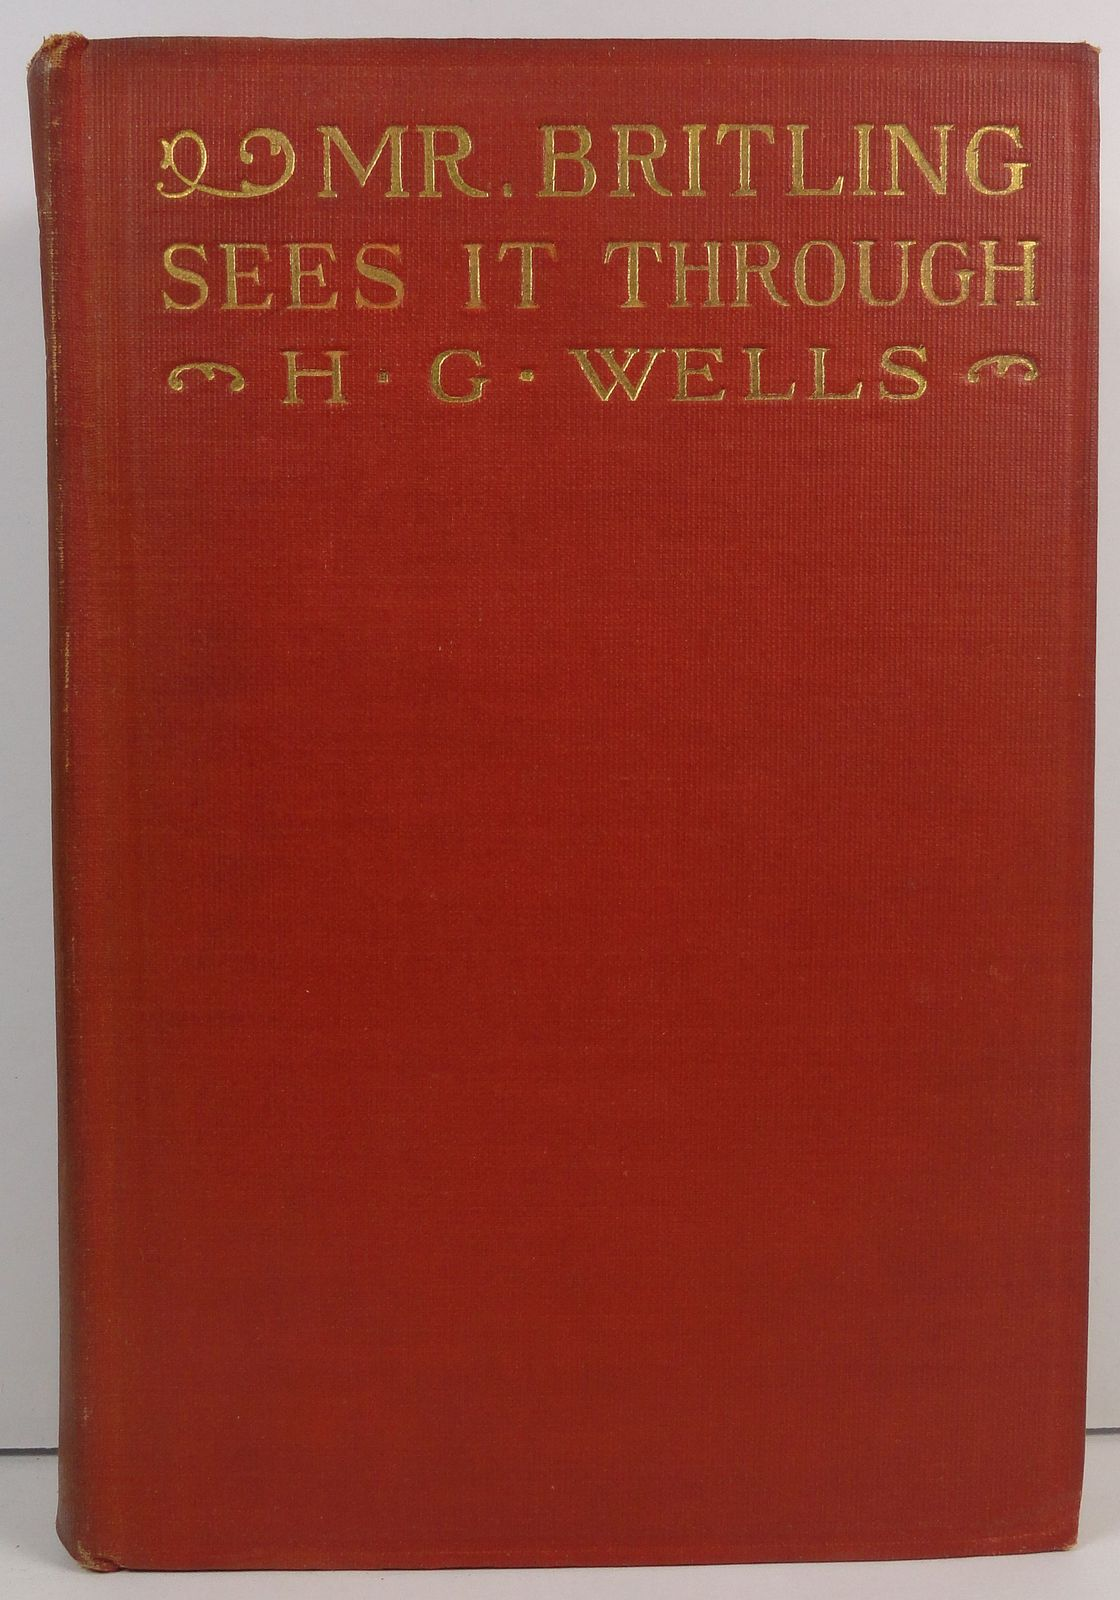 Mr. Britling Sees it Through by H. G. Wells 1917 Macmillan